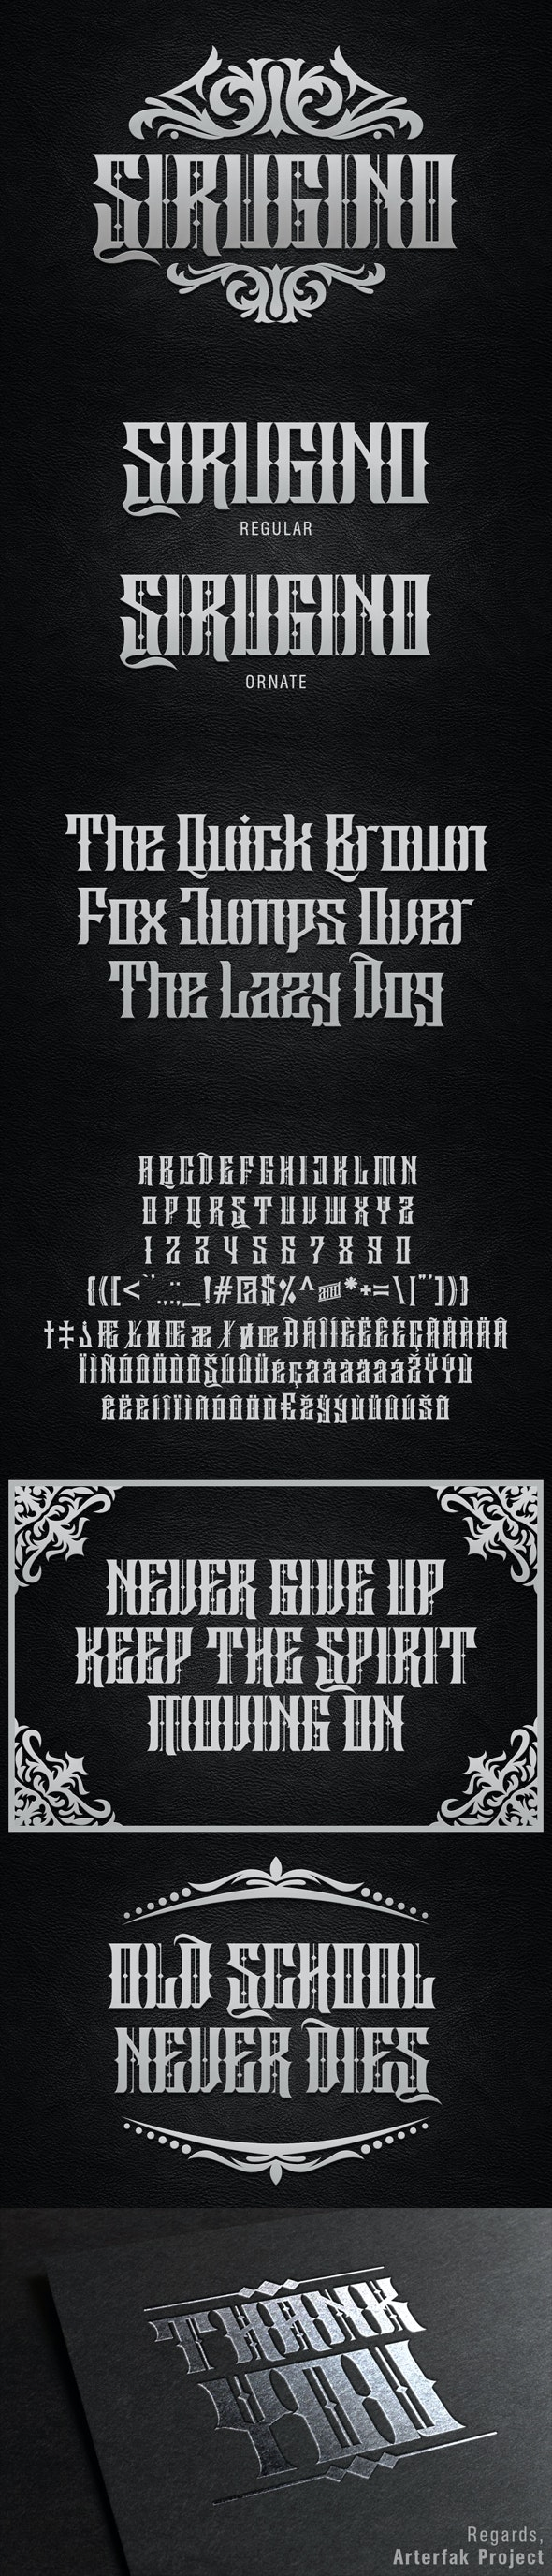 Sirugino Typeface - Gothic Decorative